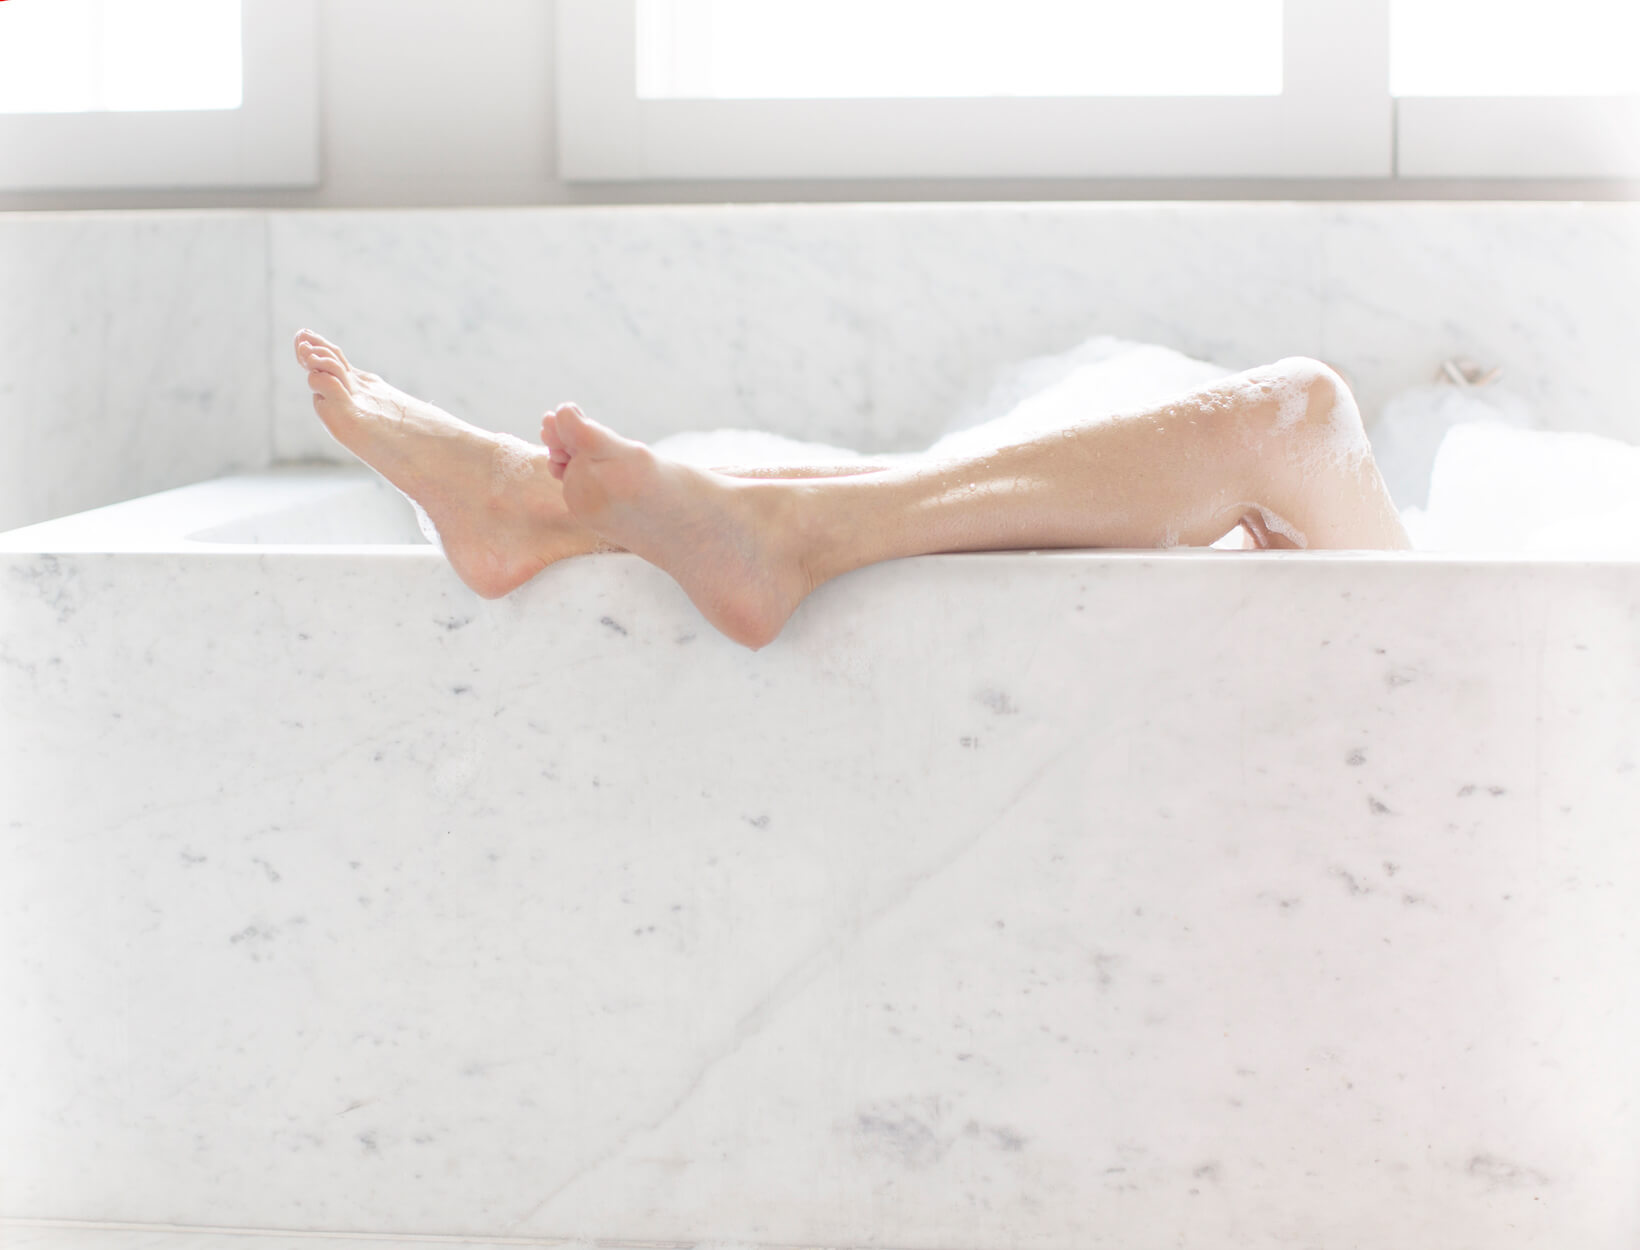 feet hanging out of a bathtub